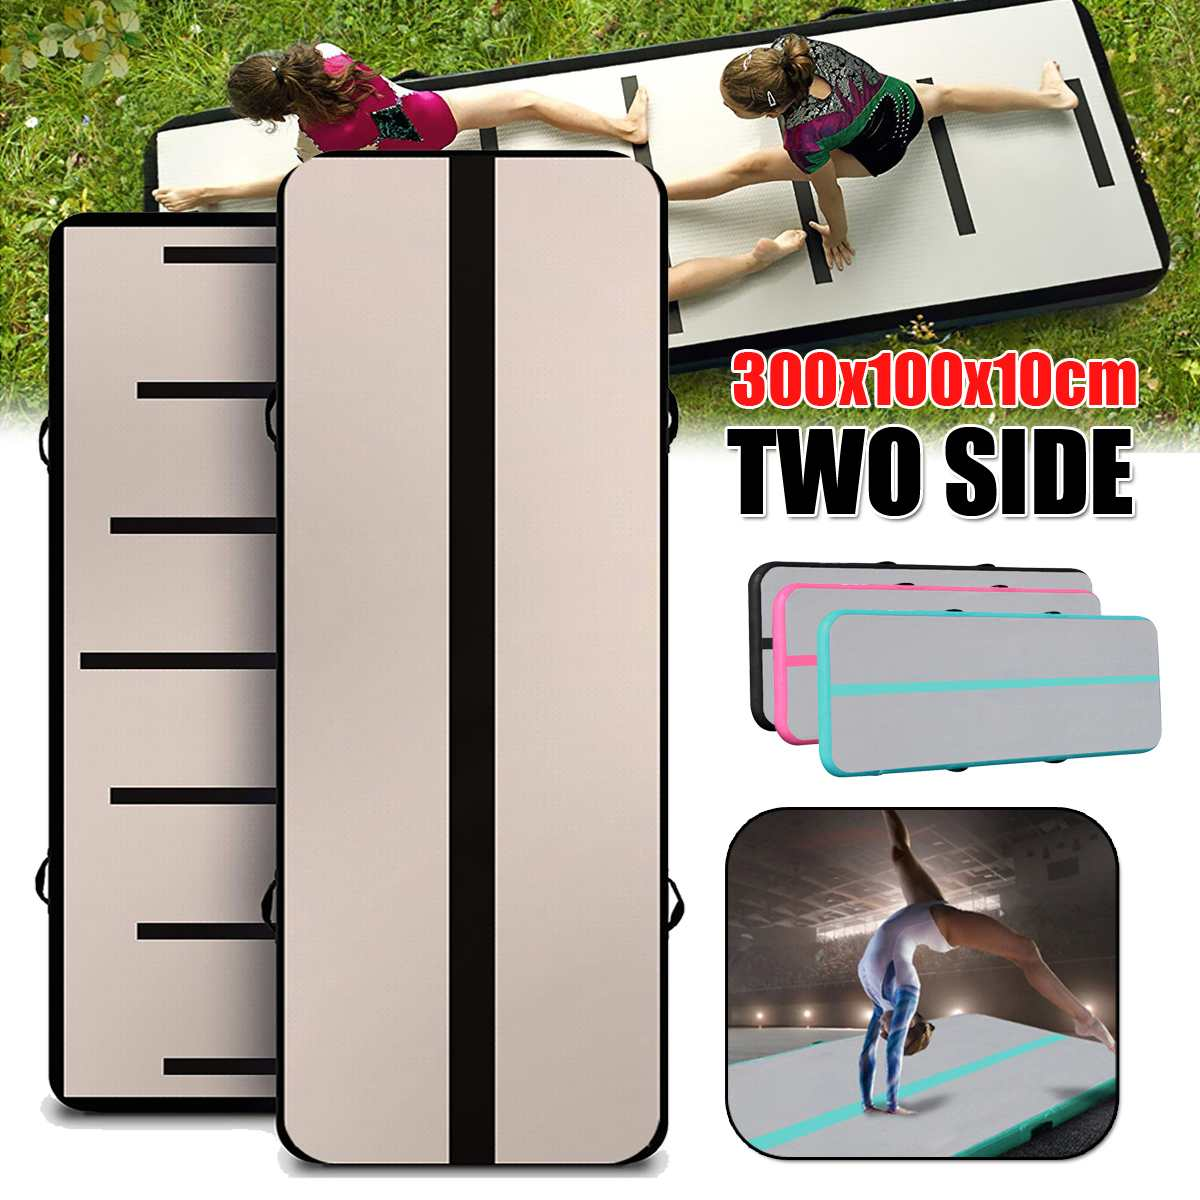 100*300*10cm Airtrack Inflatable Air Tumbling Air Track Gymnastics Mats Training Board Equipment Floor with Electric Air Pump100*300*10cm Airtrack Inflatable Air Tumbling Air Track Gymnastics Mats Training Board Equipment Floor with Electric Air Pump